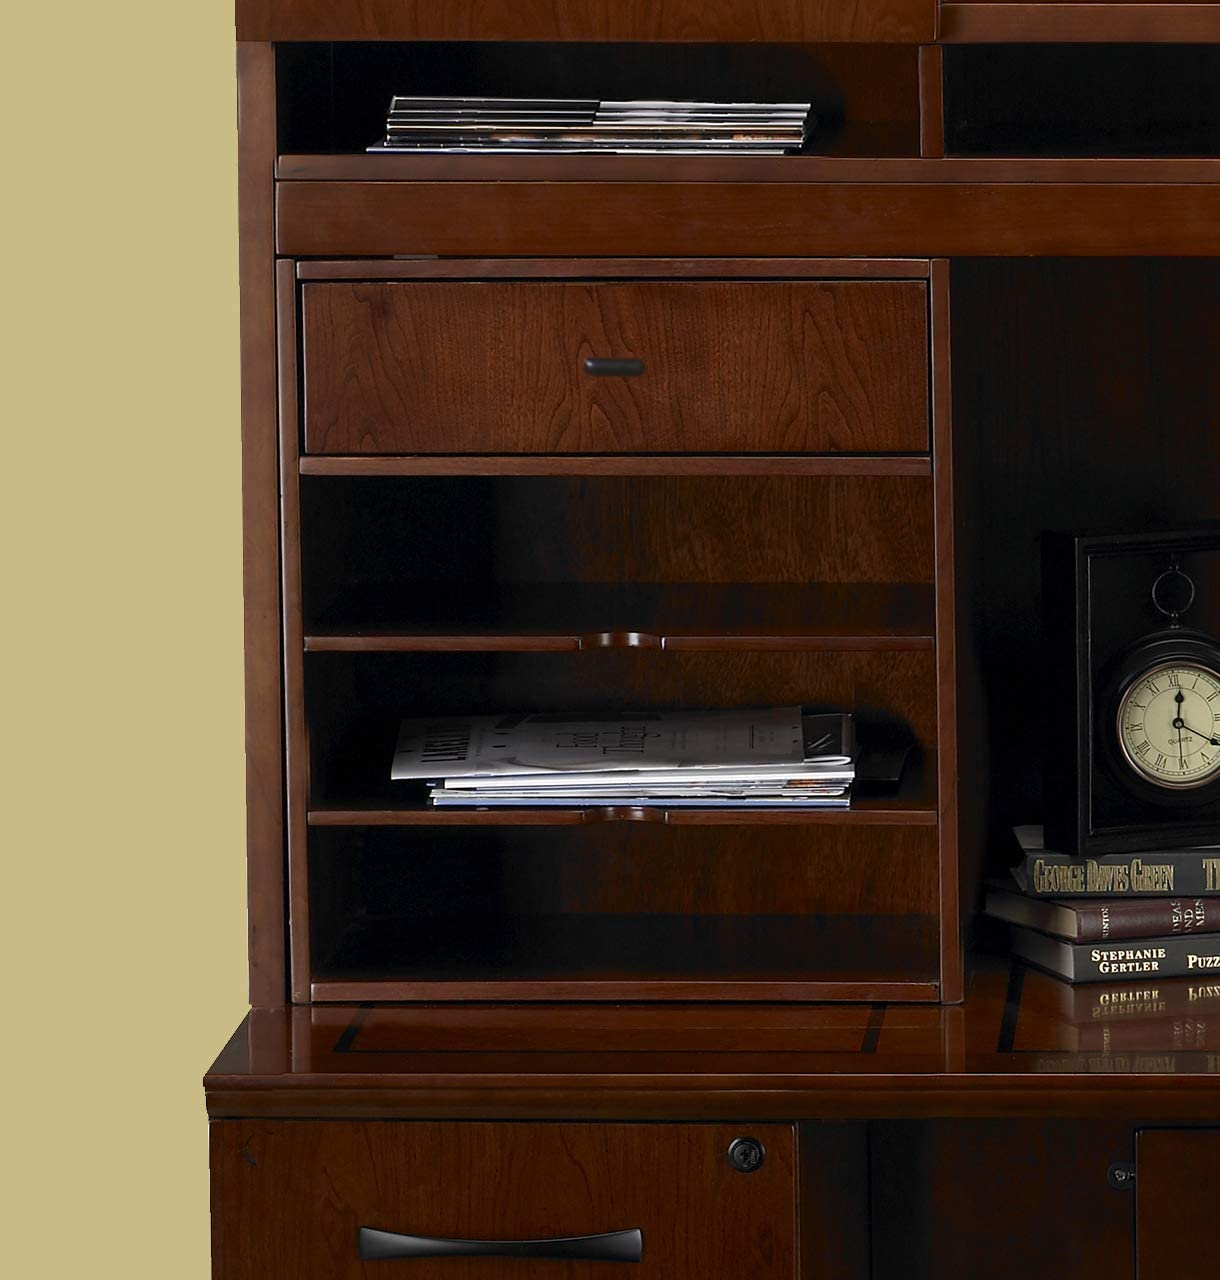 Compartments sold separately 1 Drawer and 3 Horiz Mayline Sorrento Hutch Desktop Organizer Cabinet for use with Hutch Espresso Veneer